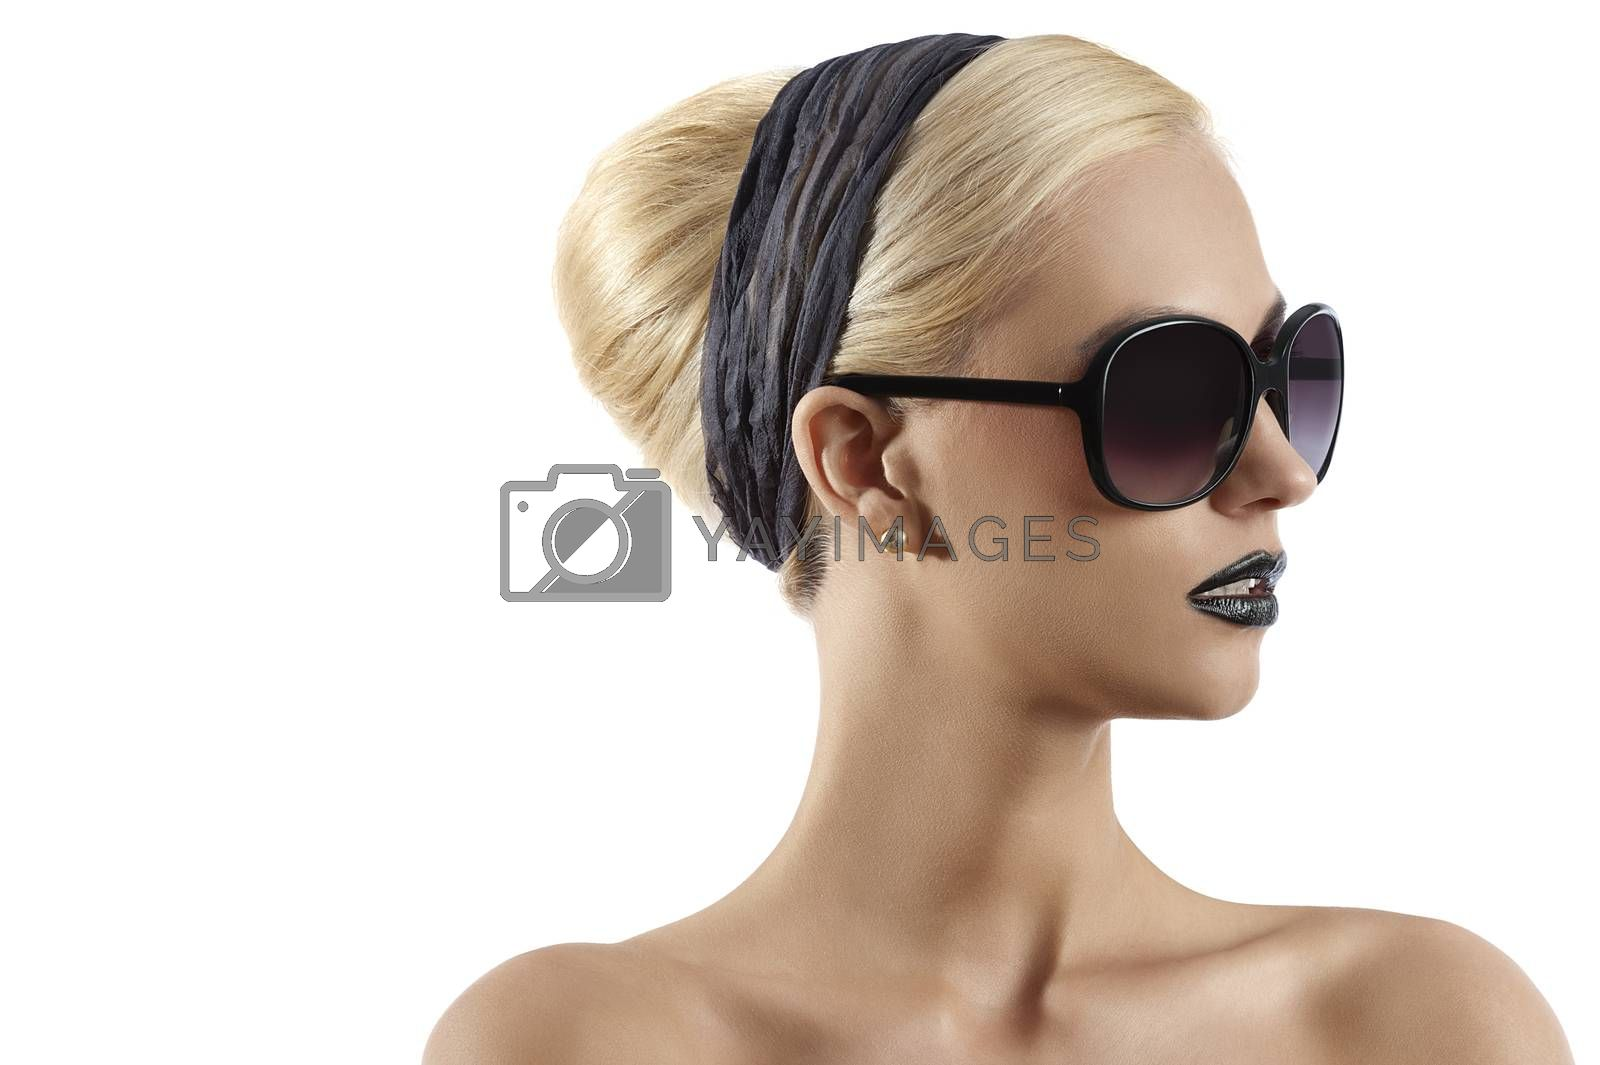 Royalty free image of fashion shot of blond girl with sunglasses against white backgro by fotoCD